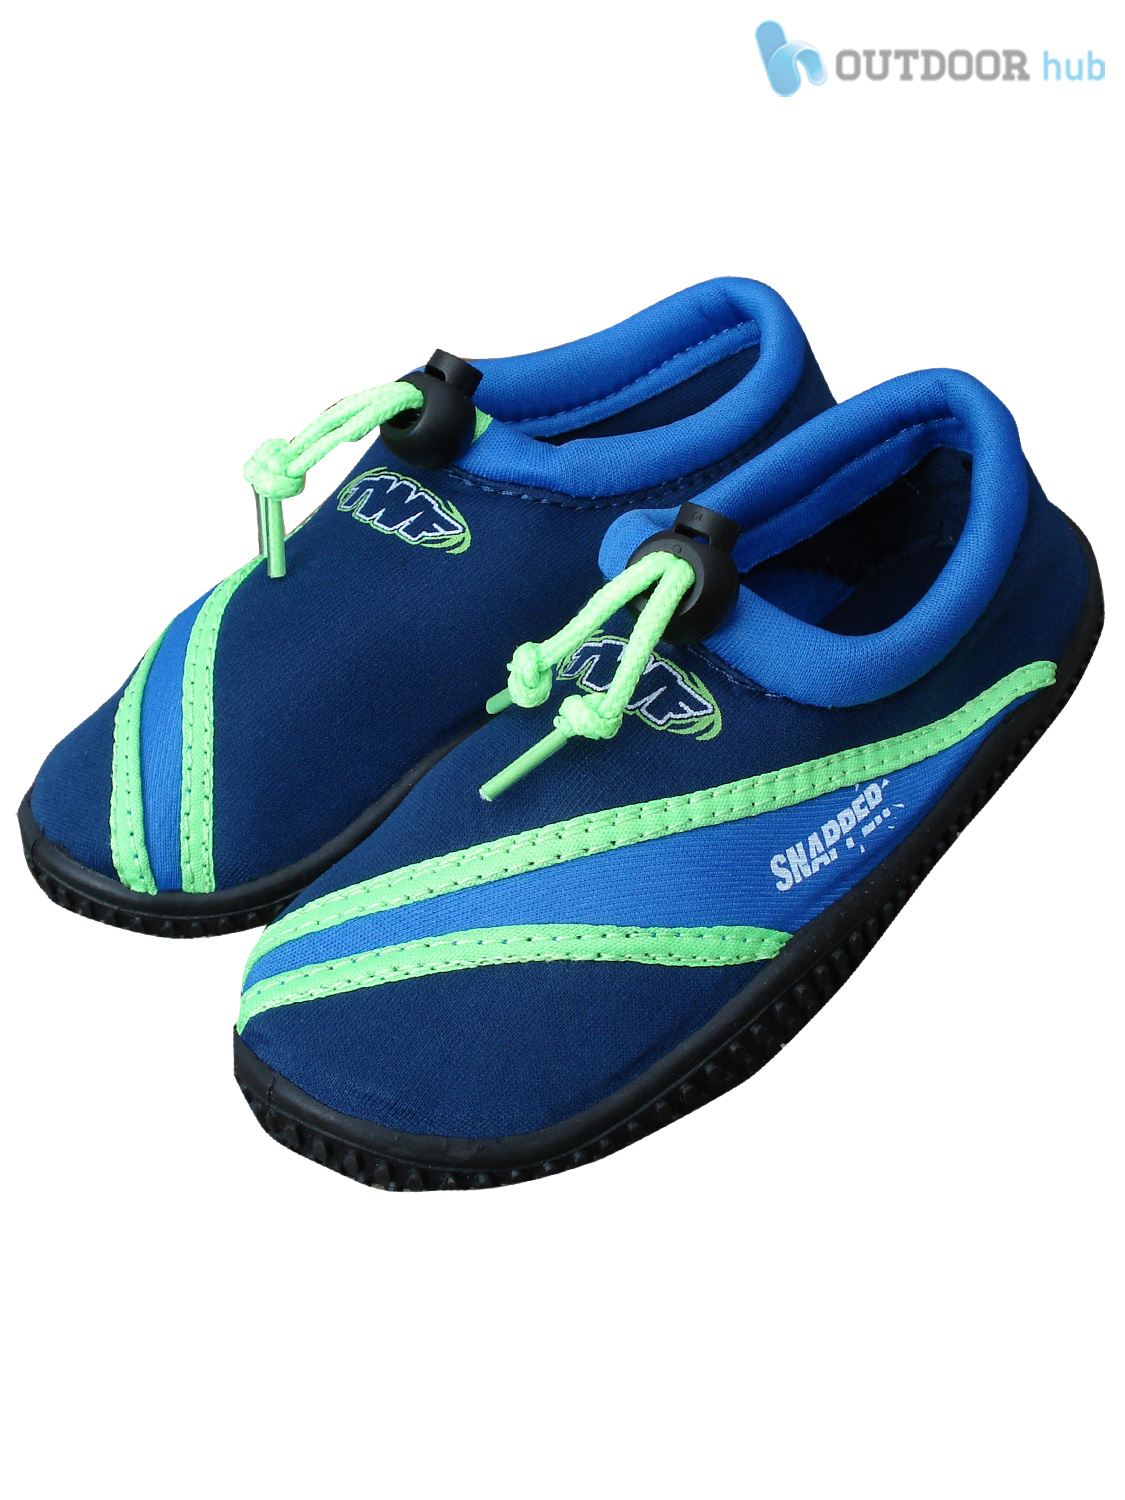 twf aqua shoes mens boys childs adults